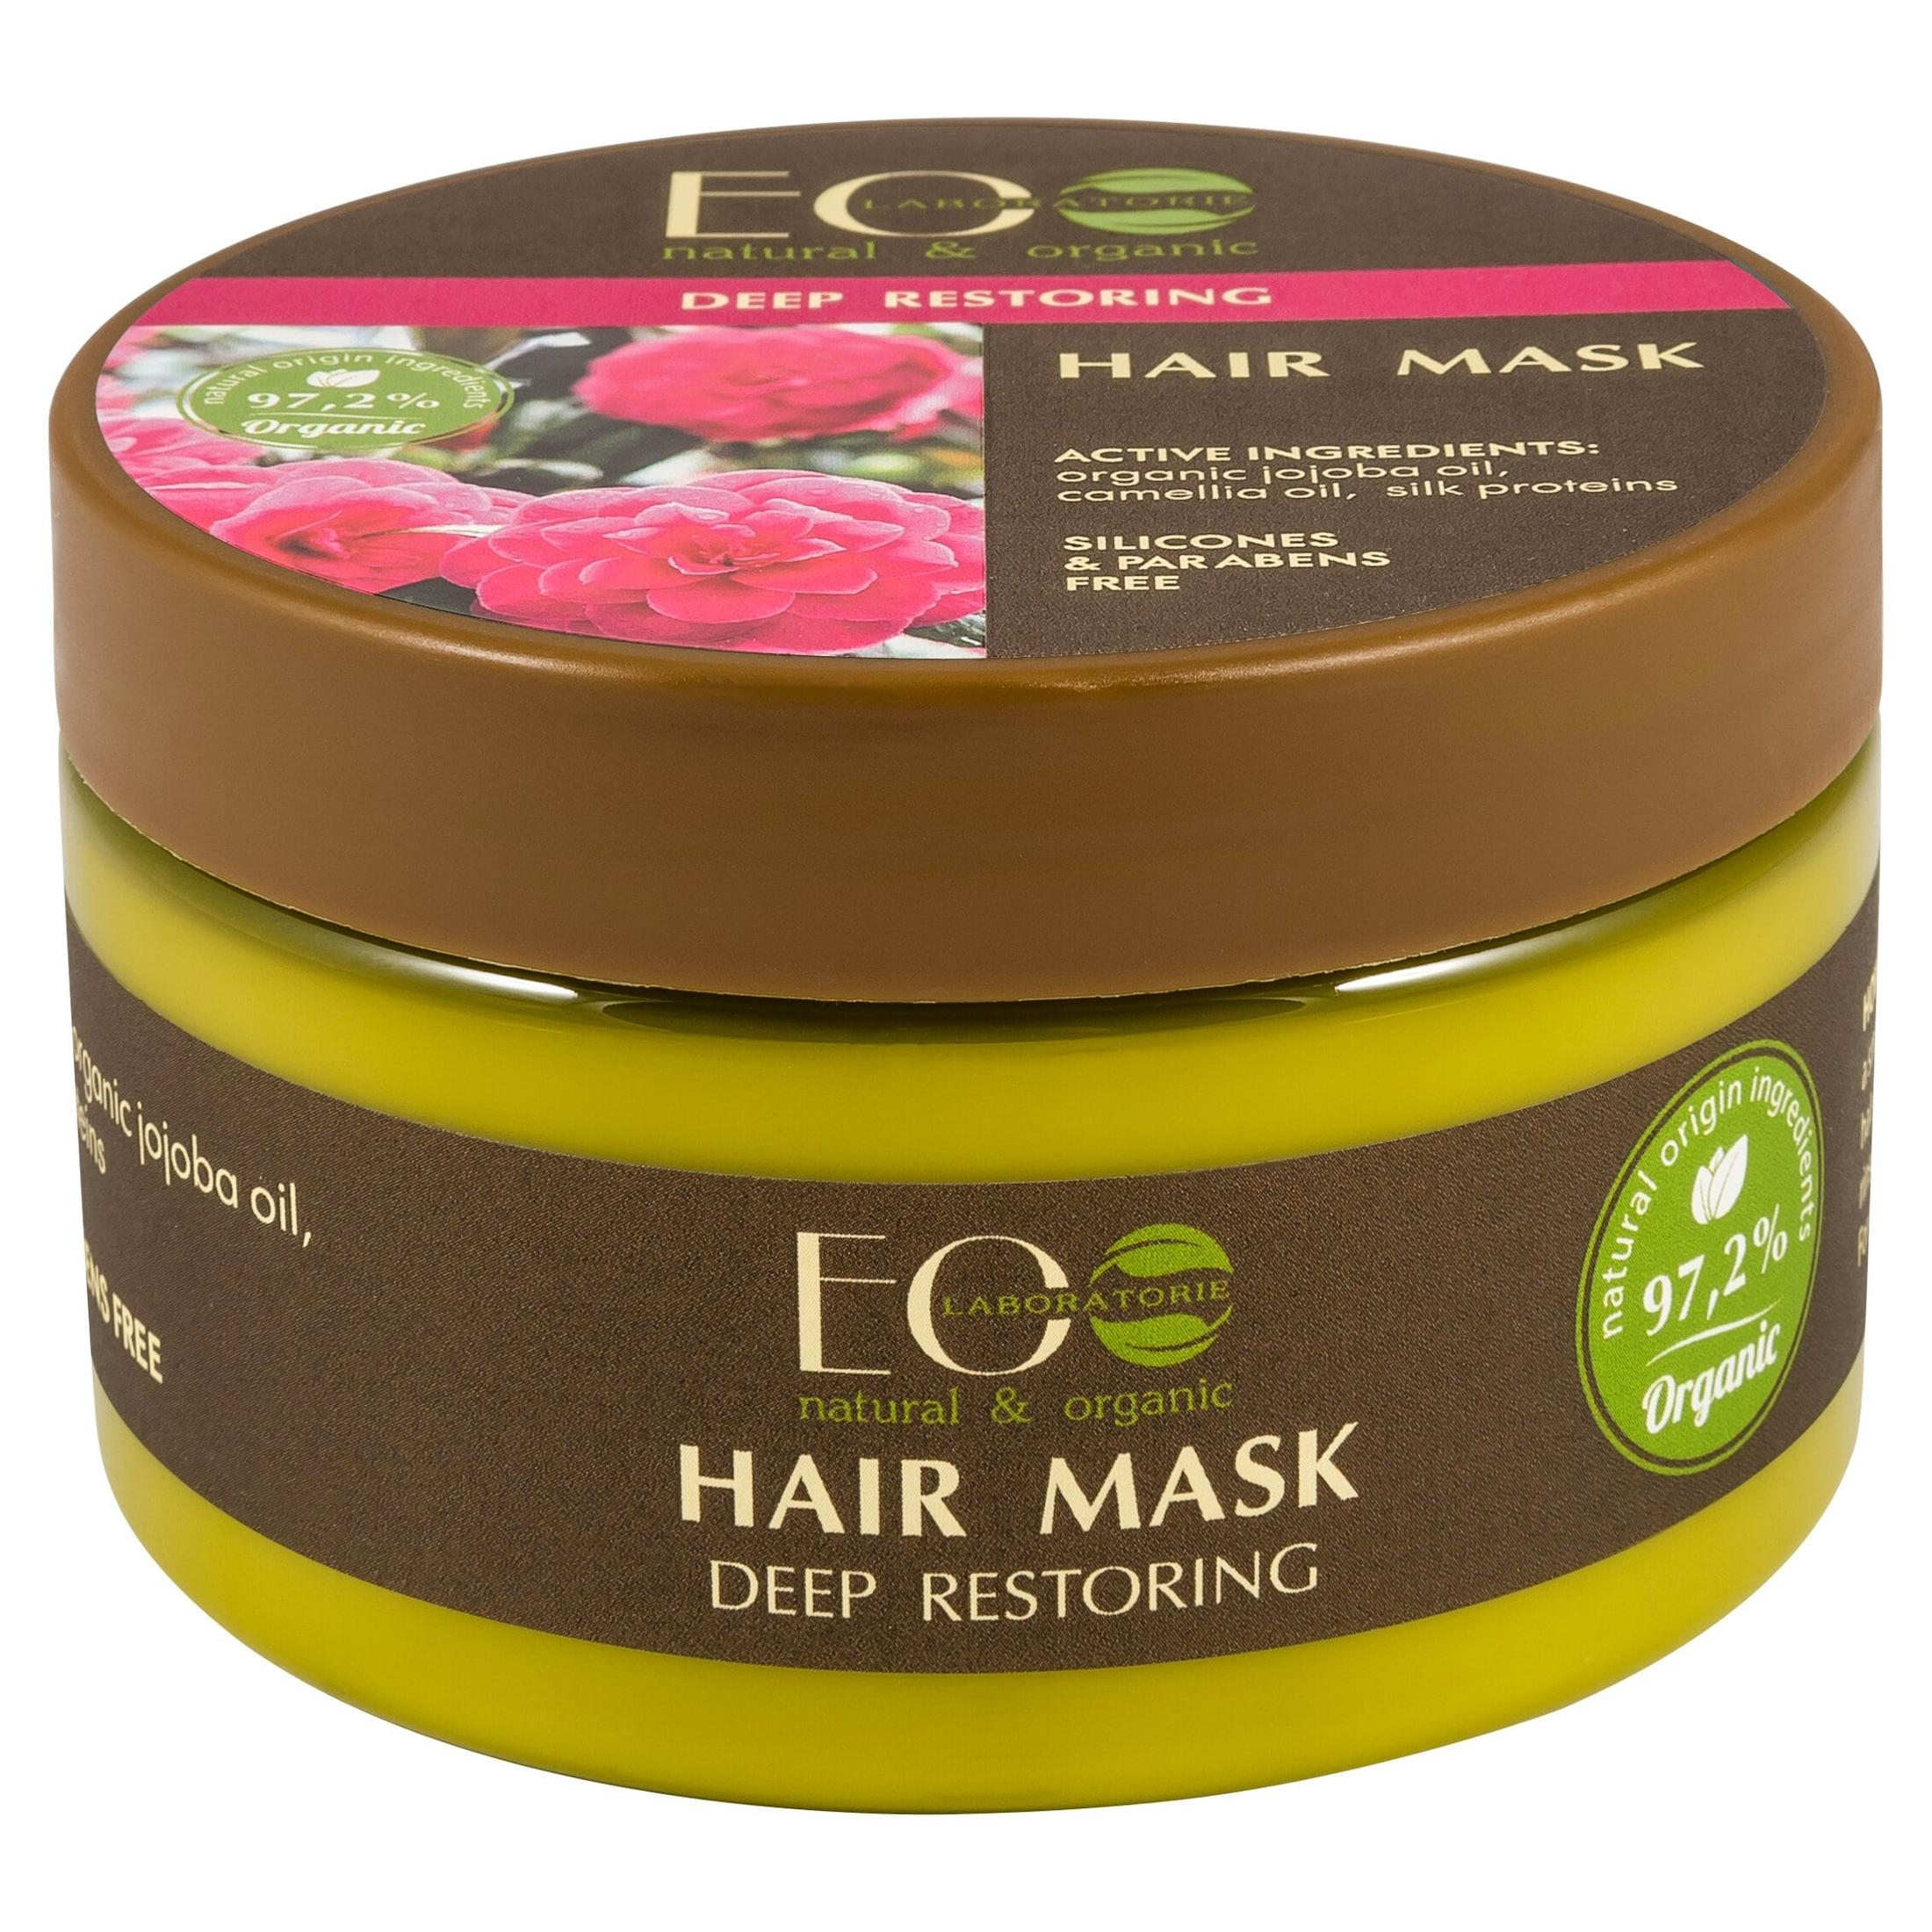 EO Laboratorie Organic hair mask deep restoring & repair with jojoba oil camilia oil & Sick proteins sulfate free , silicone & parabens free